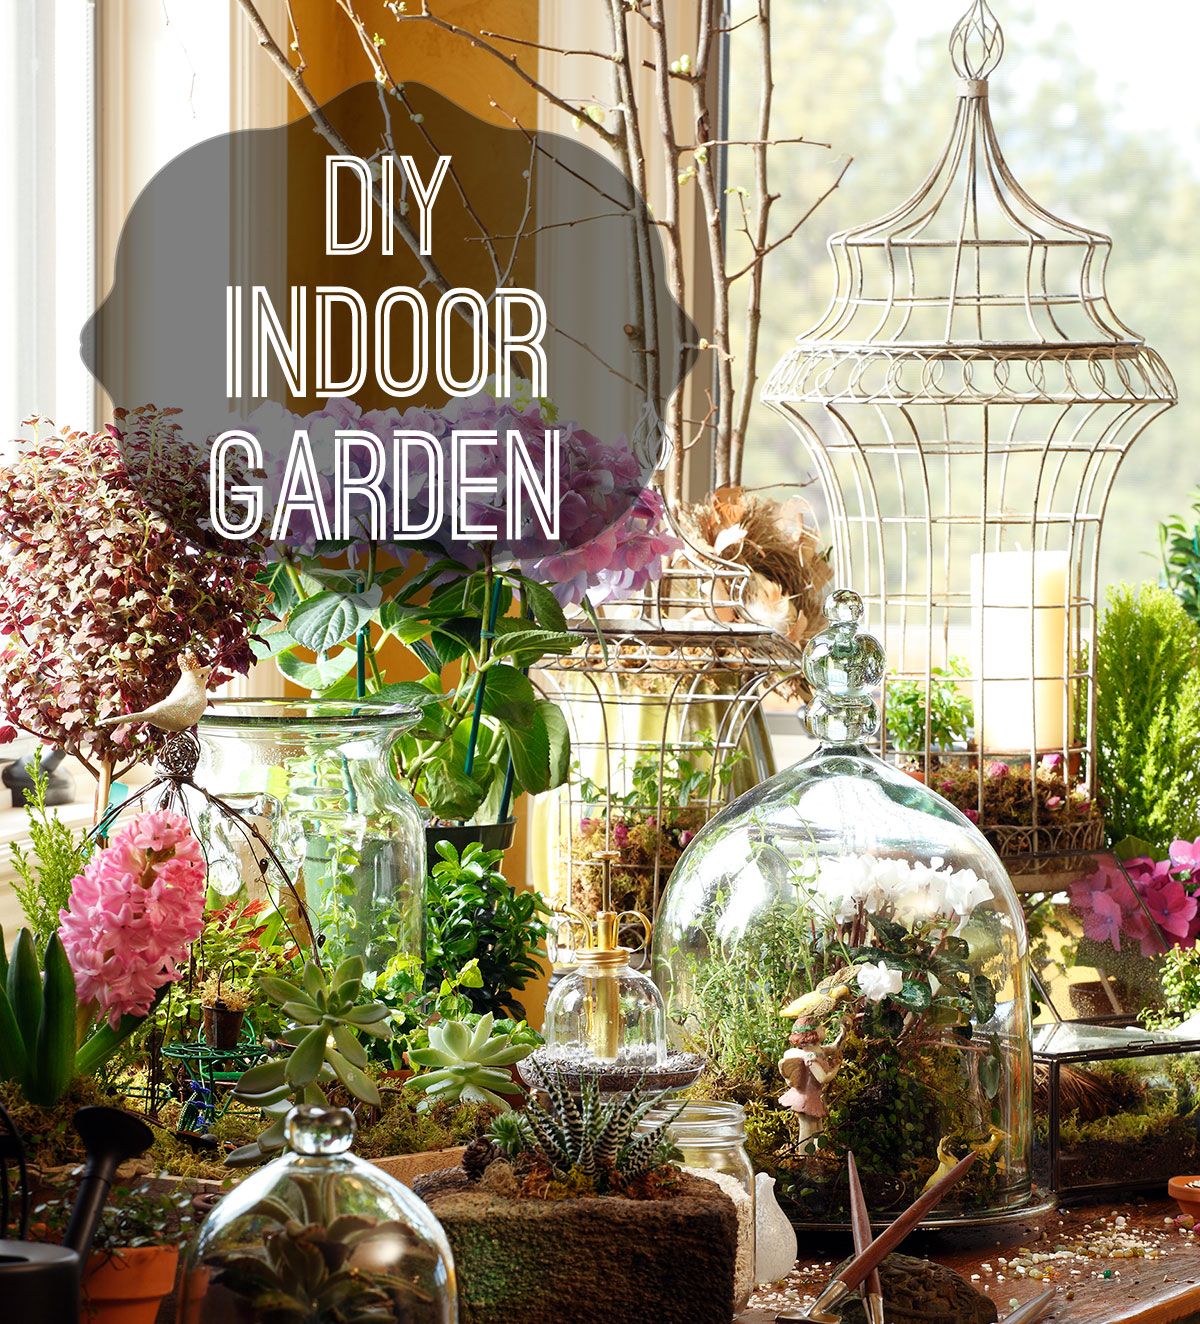 DIY-Indoor-Garden